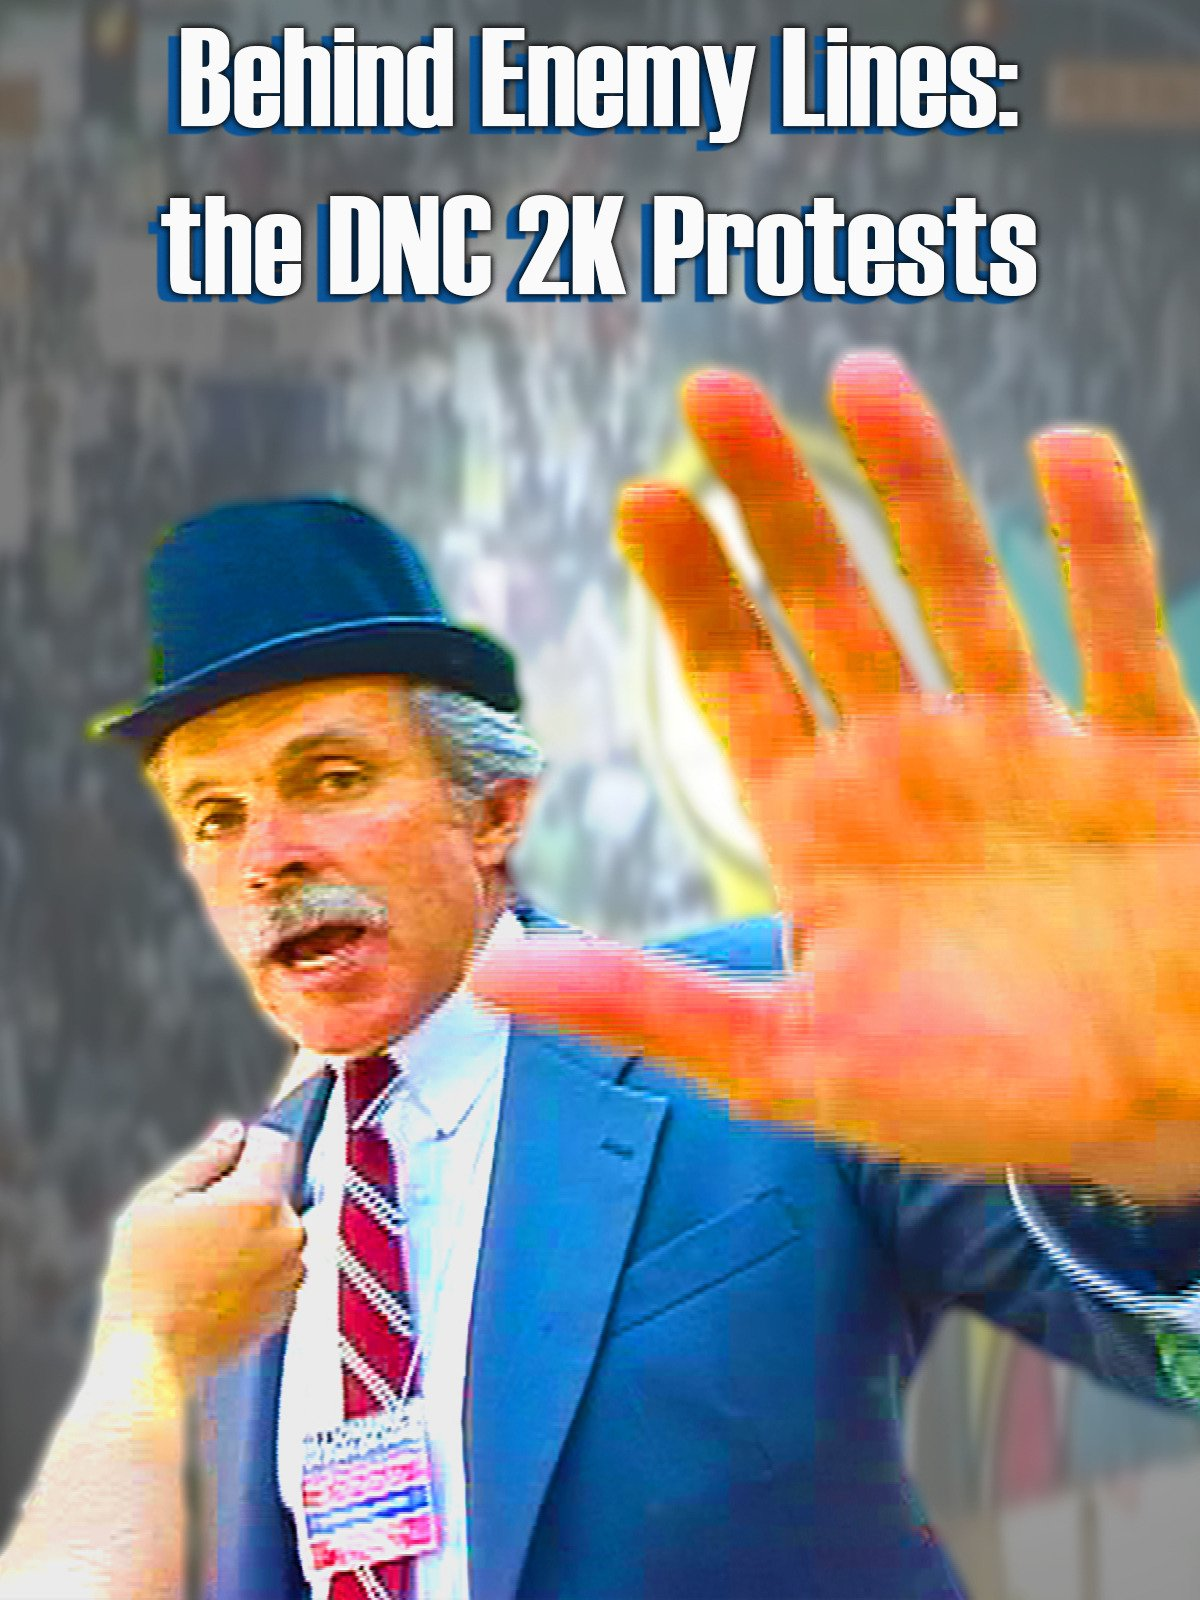 Behind Enemy Lines: the DNC 2K Protests